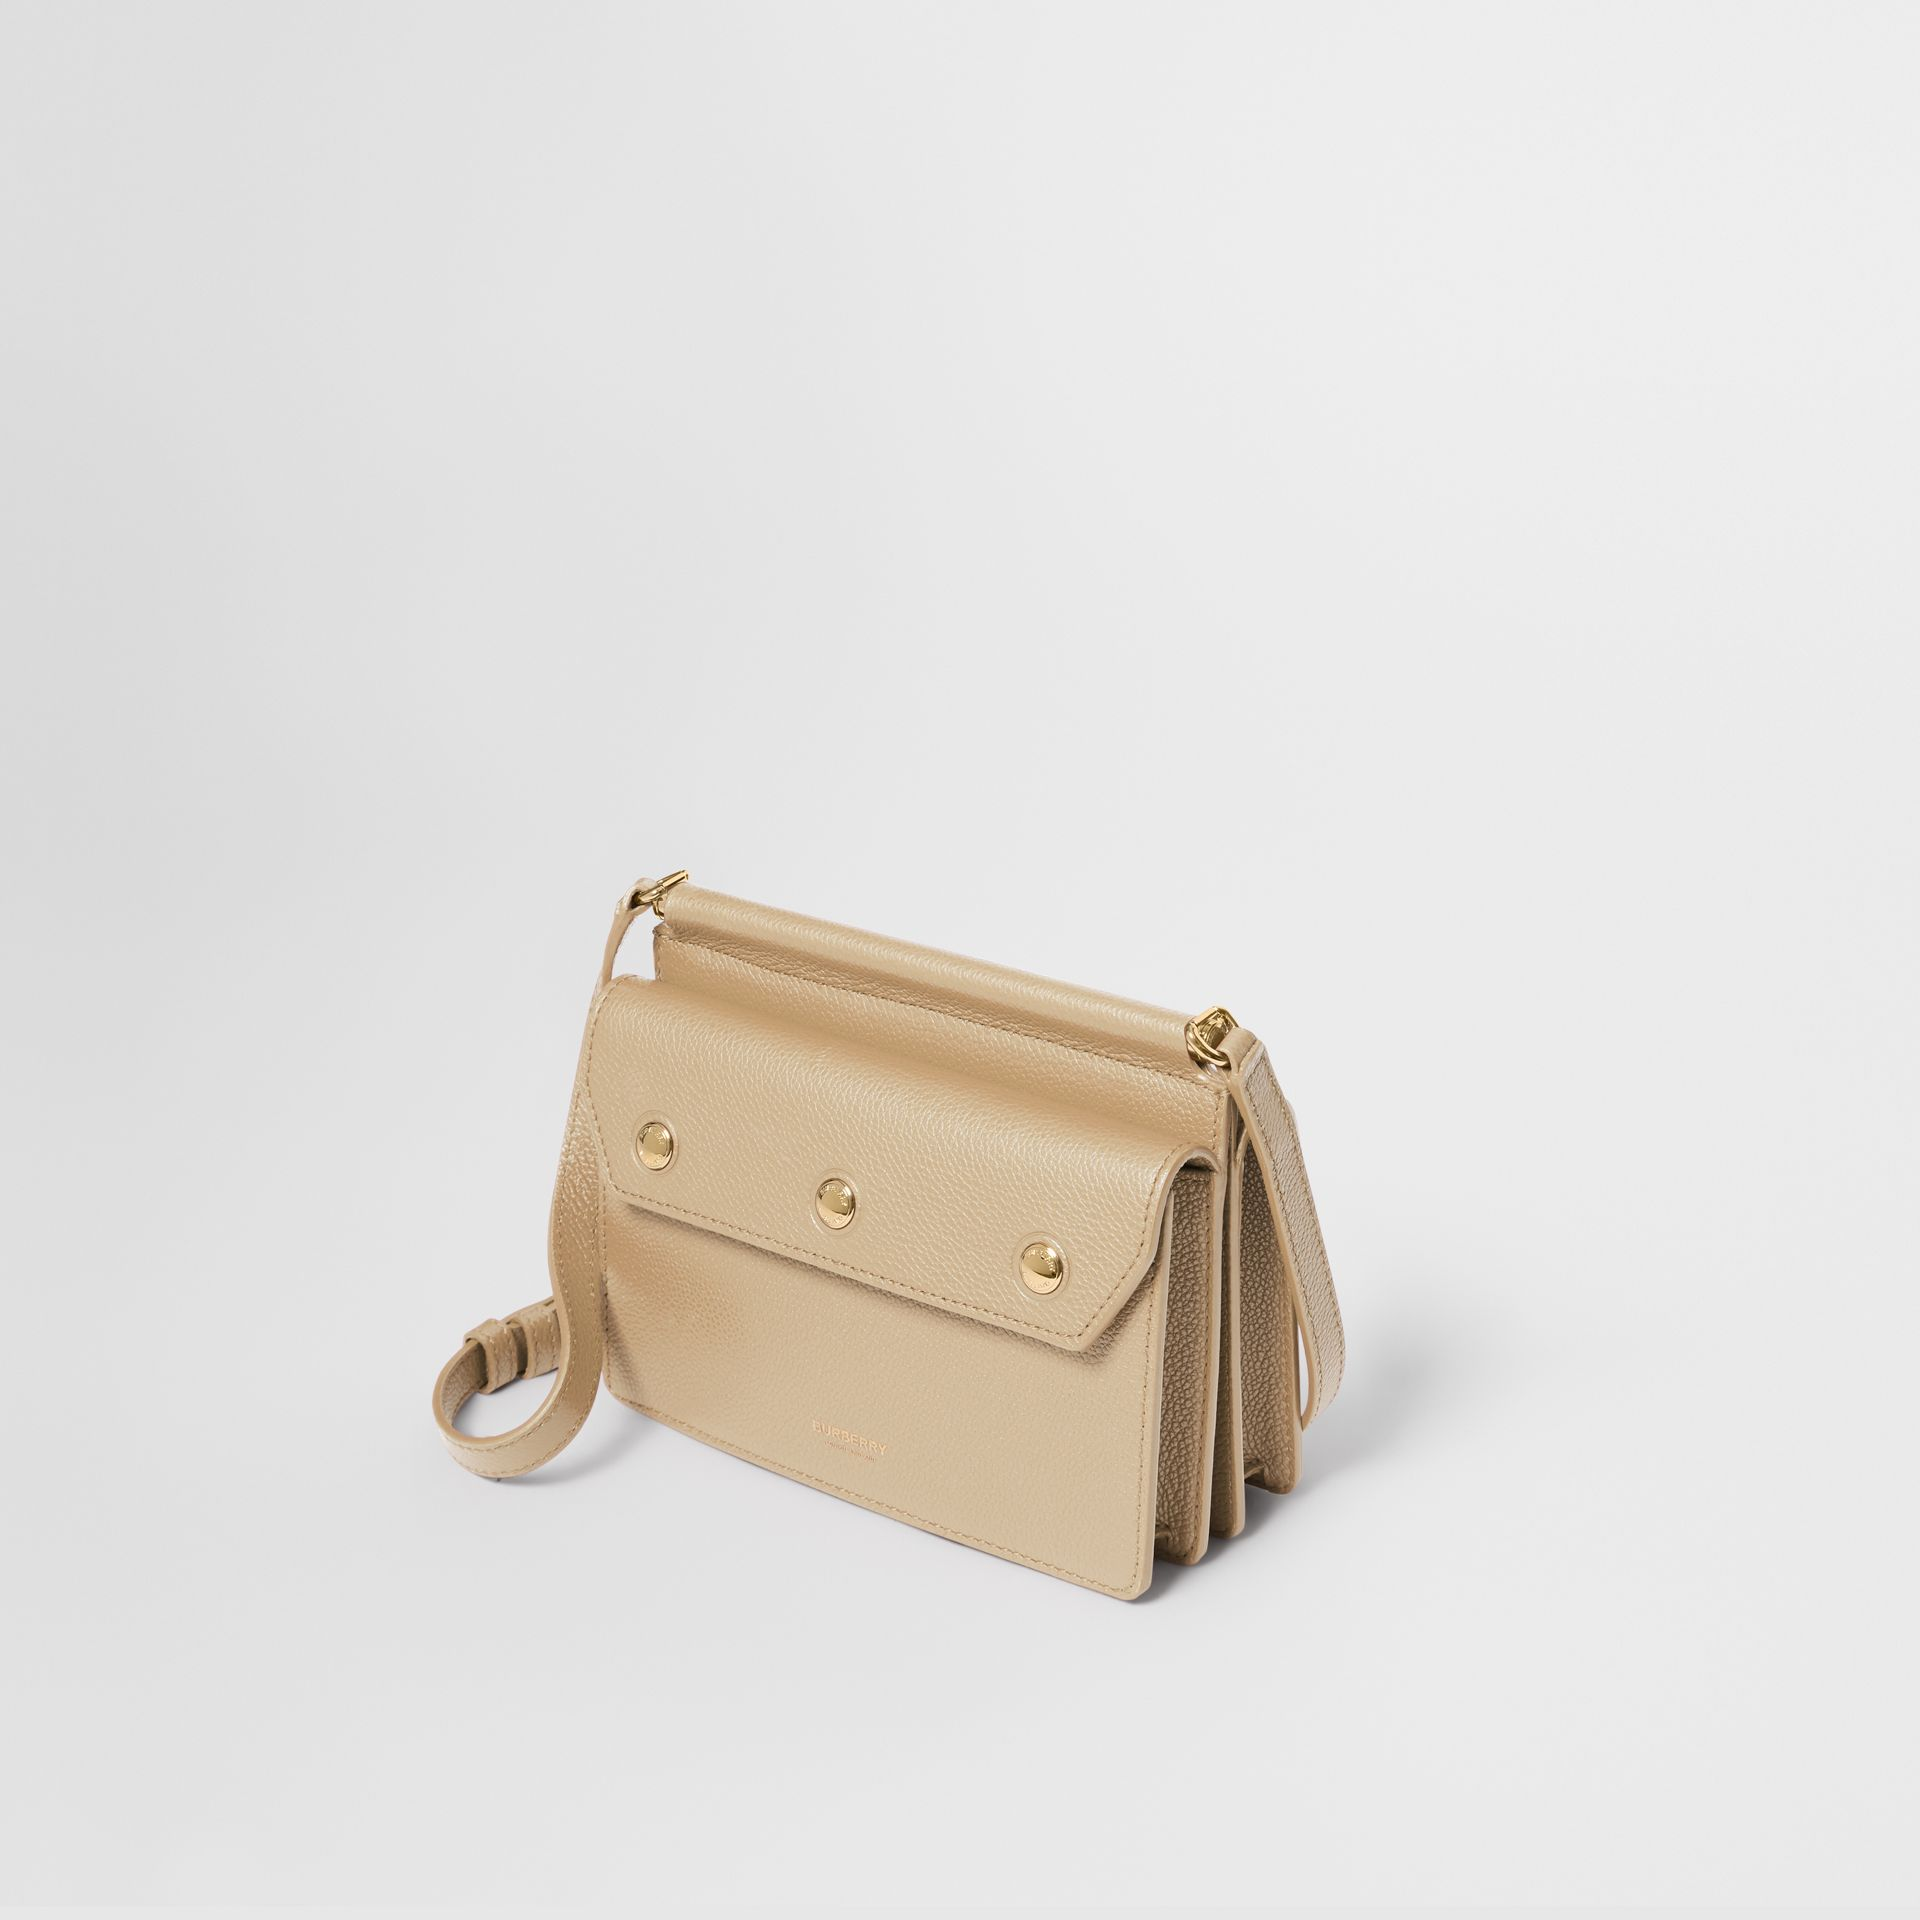 Mini sac Title en cuir avec poche (Miel) - Femme | Burberry - photo de la galerie 3